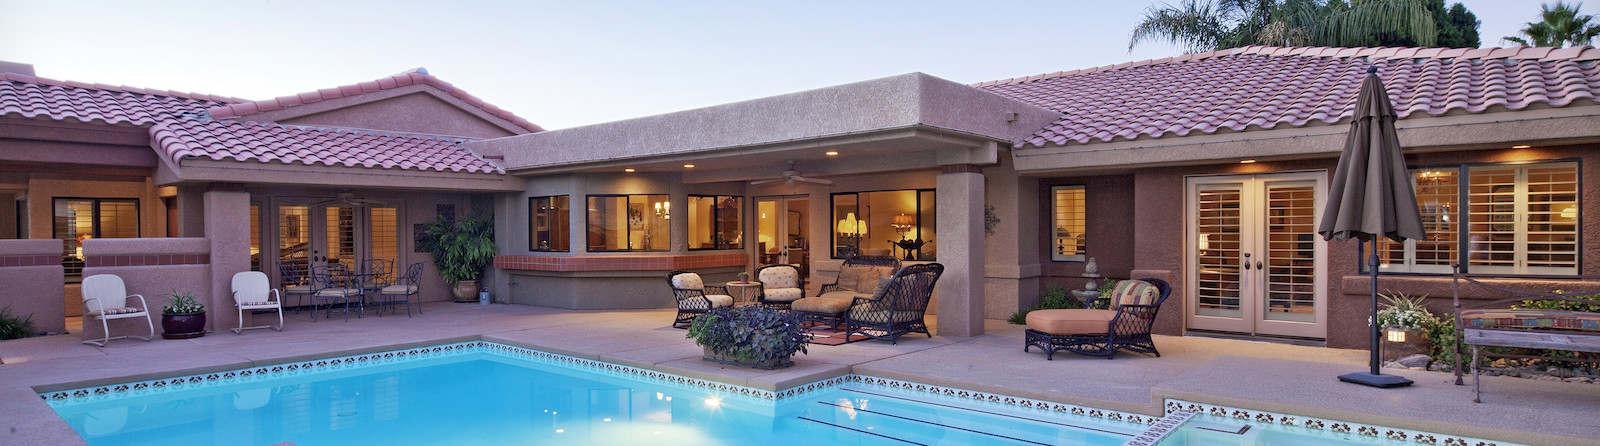 Villa with a pool and hot tub and poolside furniture